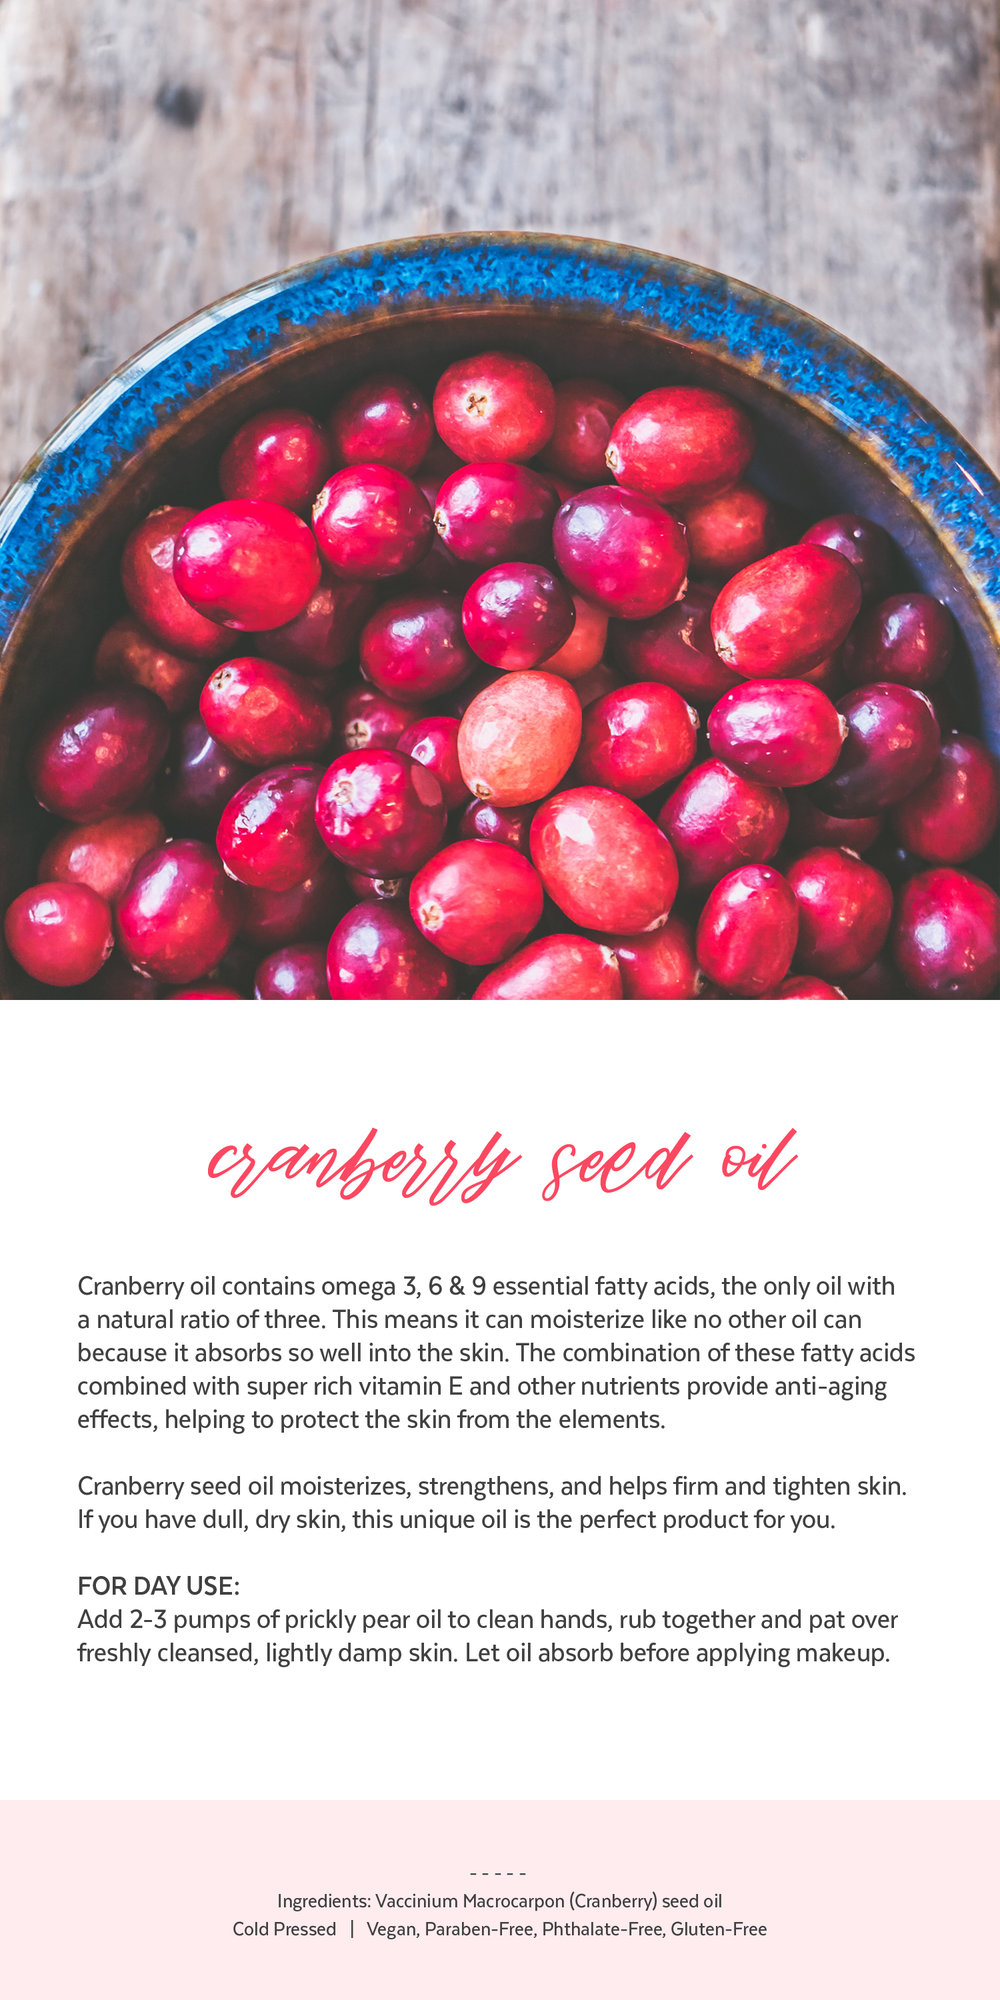 4-Cranberry Seed Oil.jpg